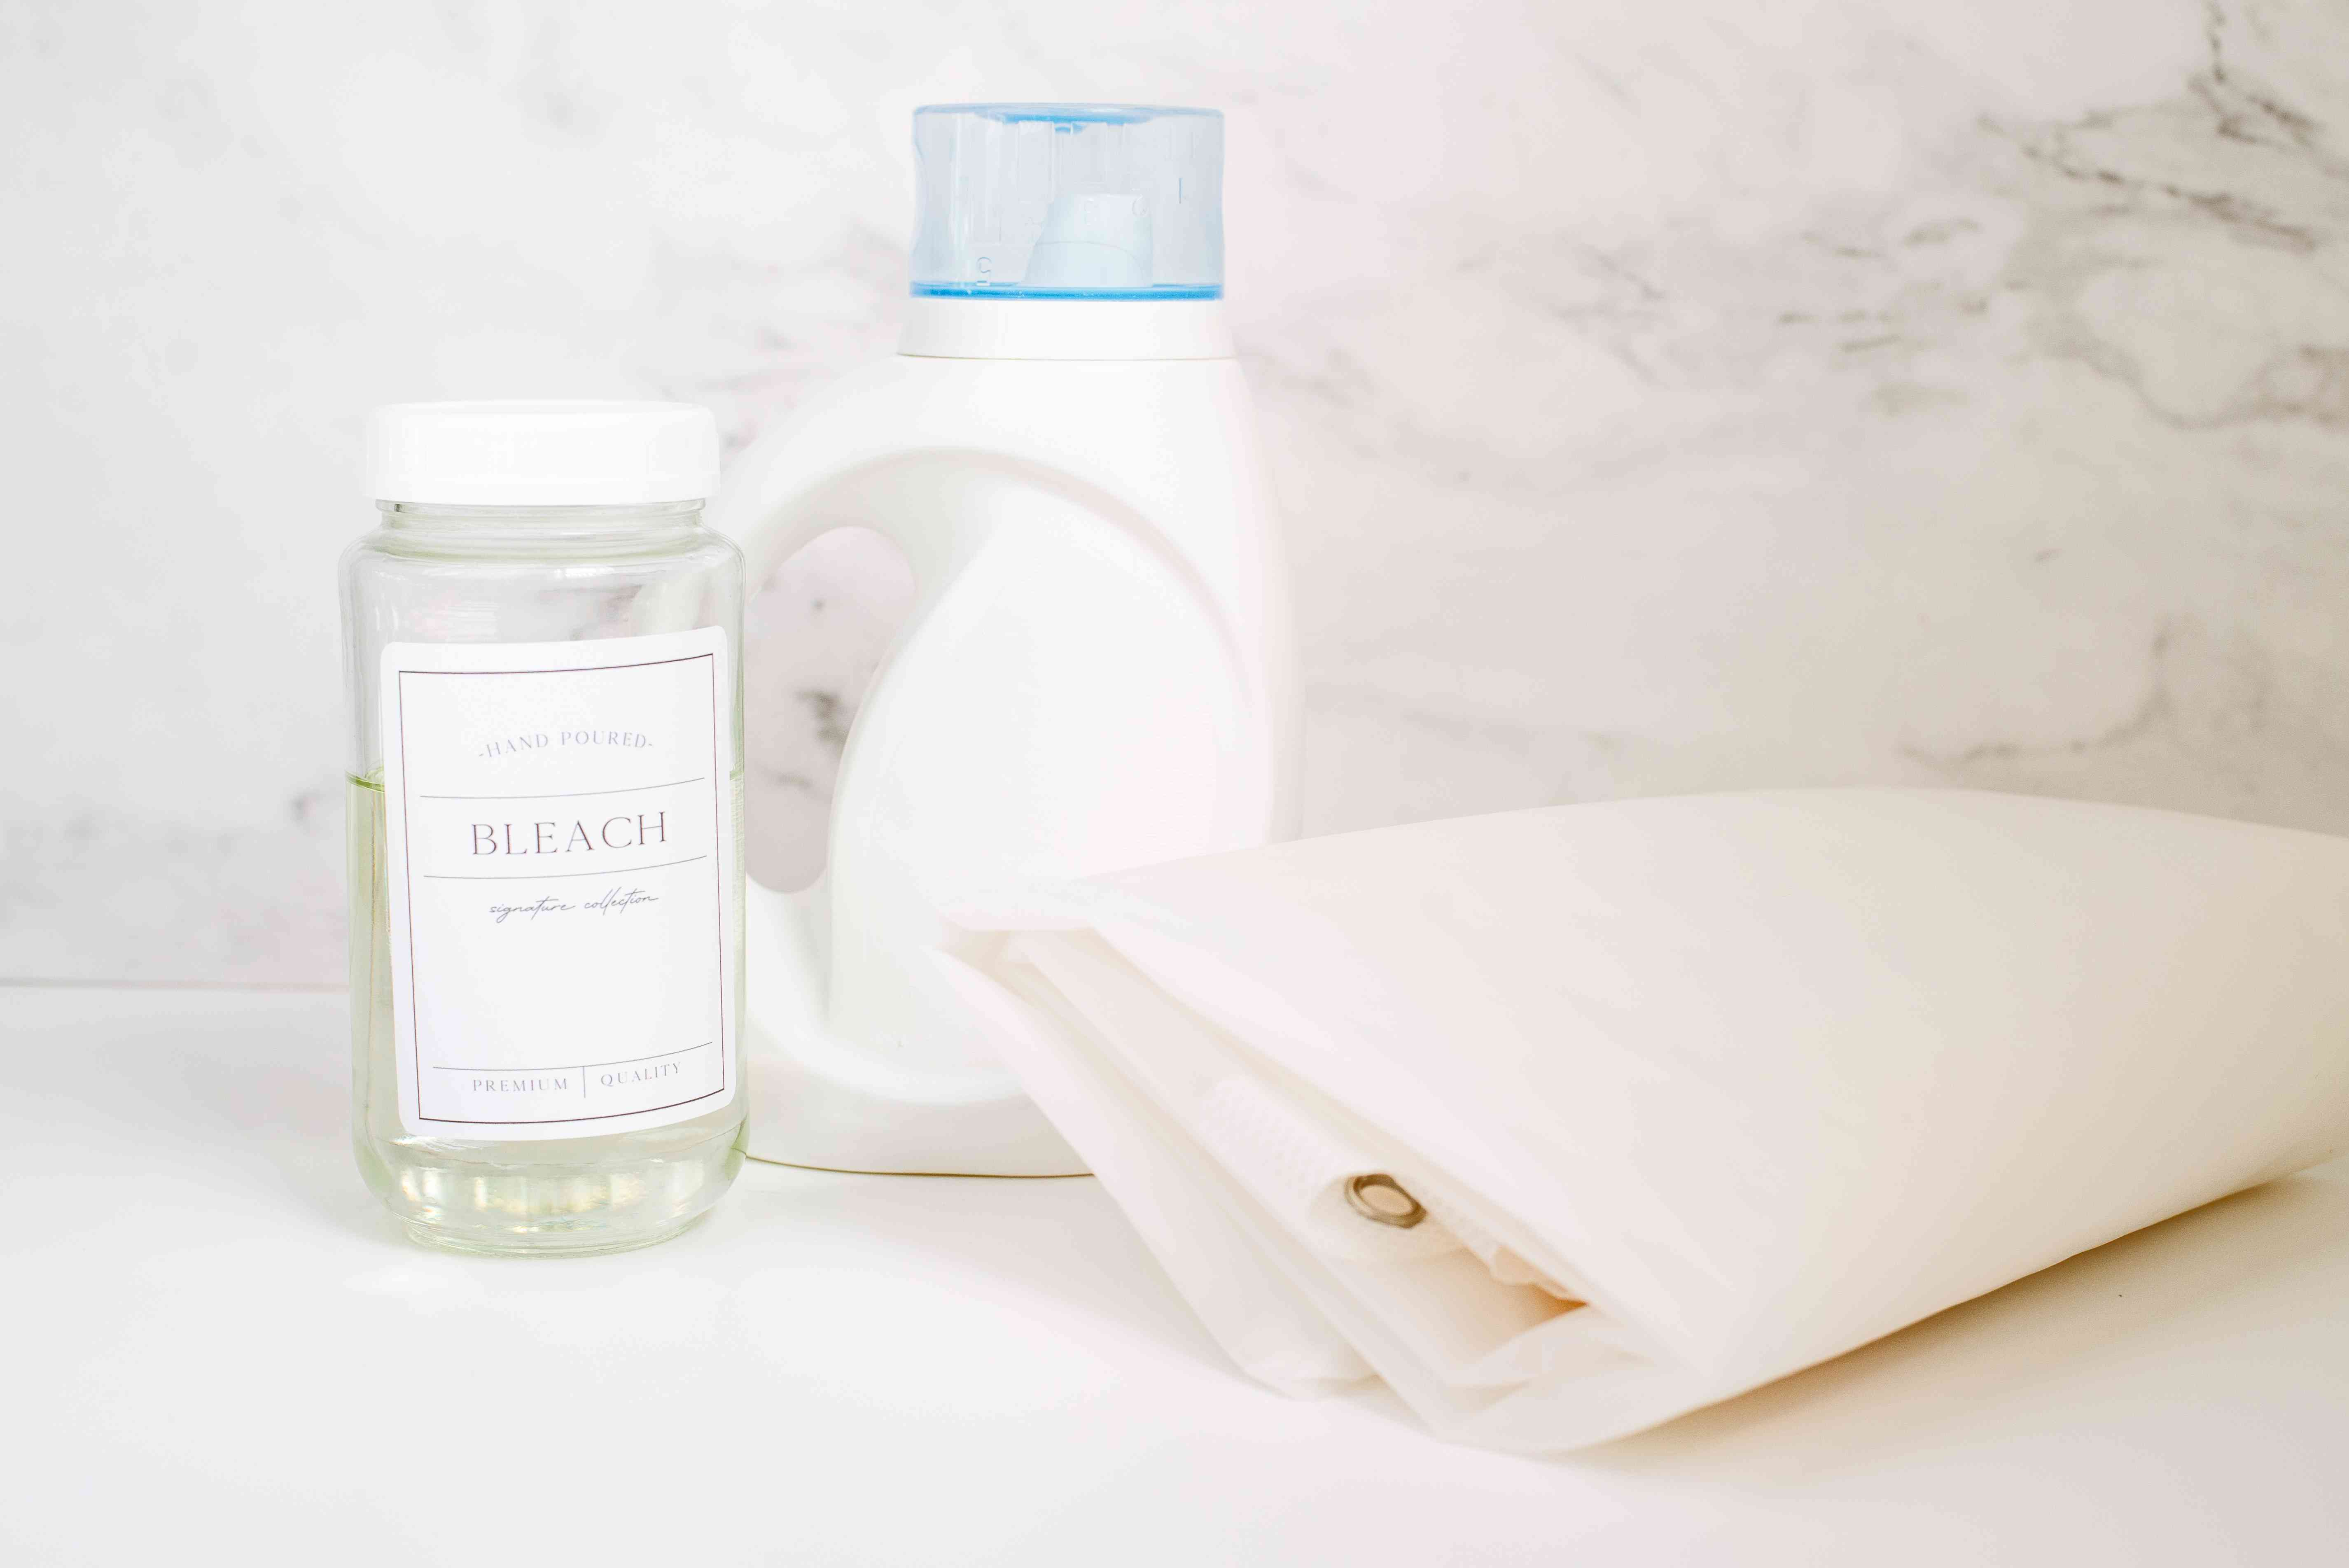 Chlorine bleach in glass container next to heavy duty laundry detergent bottle and folded vinyl shower curtain